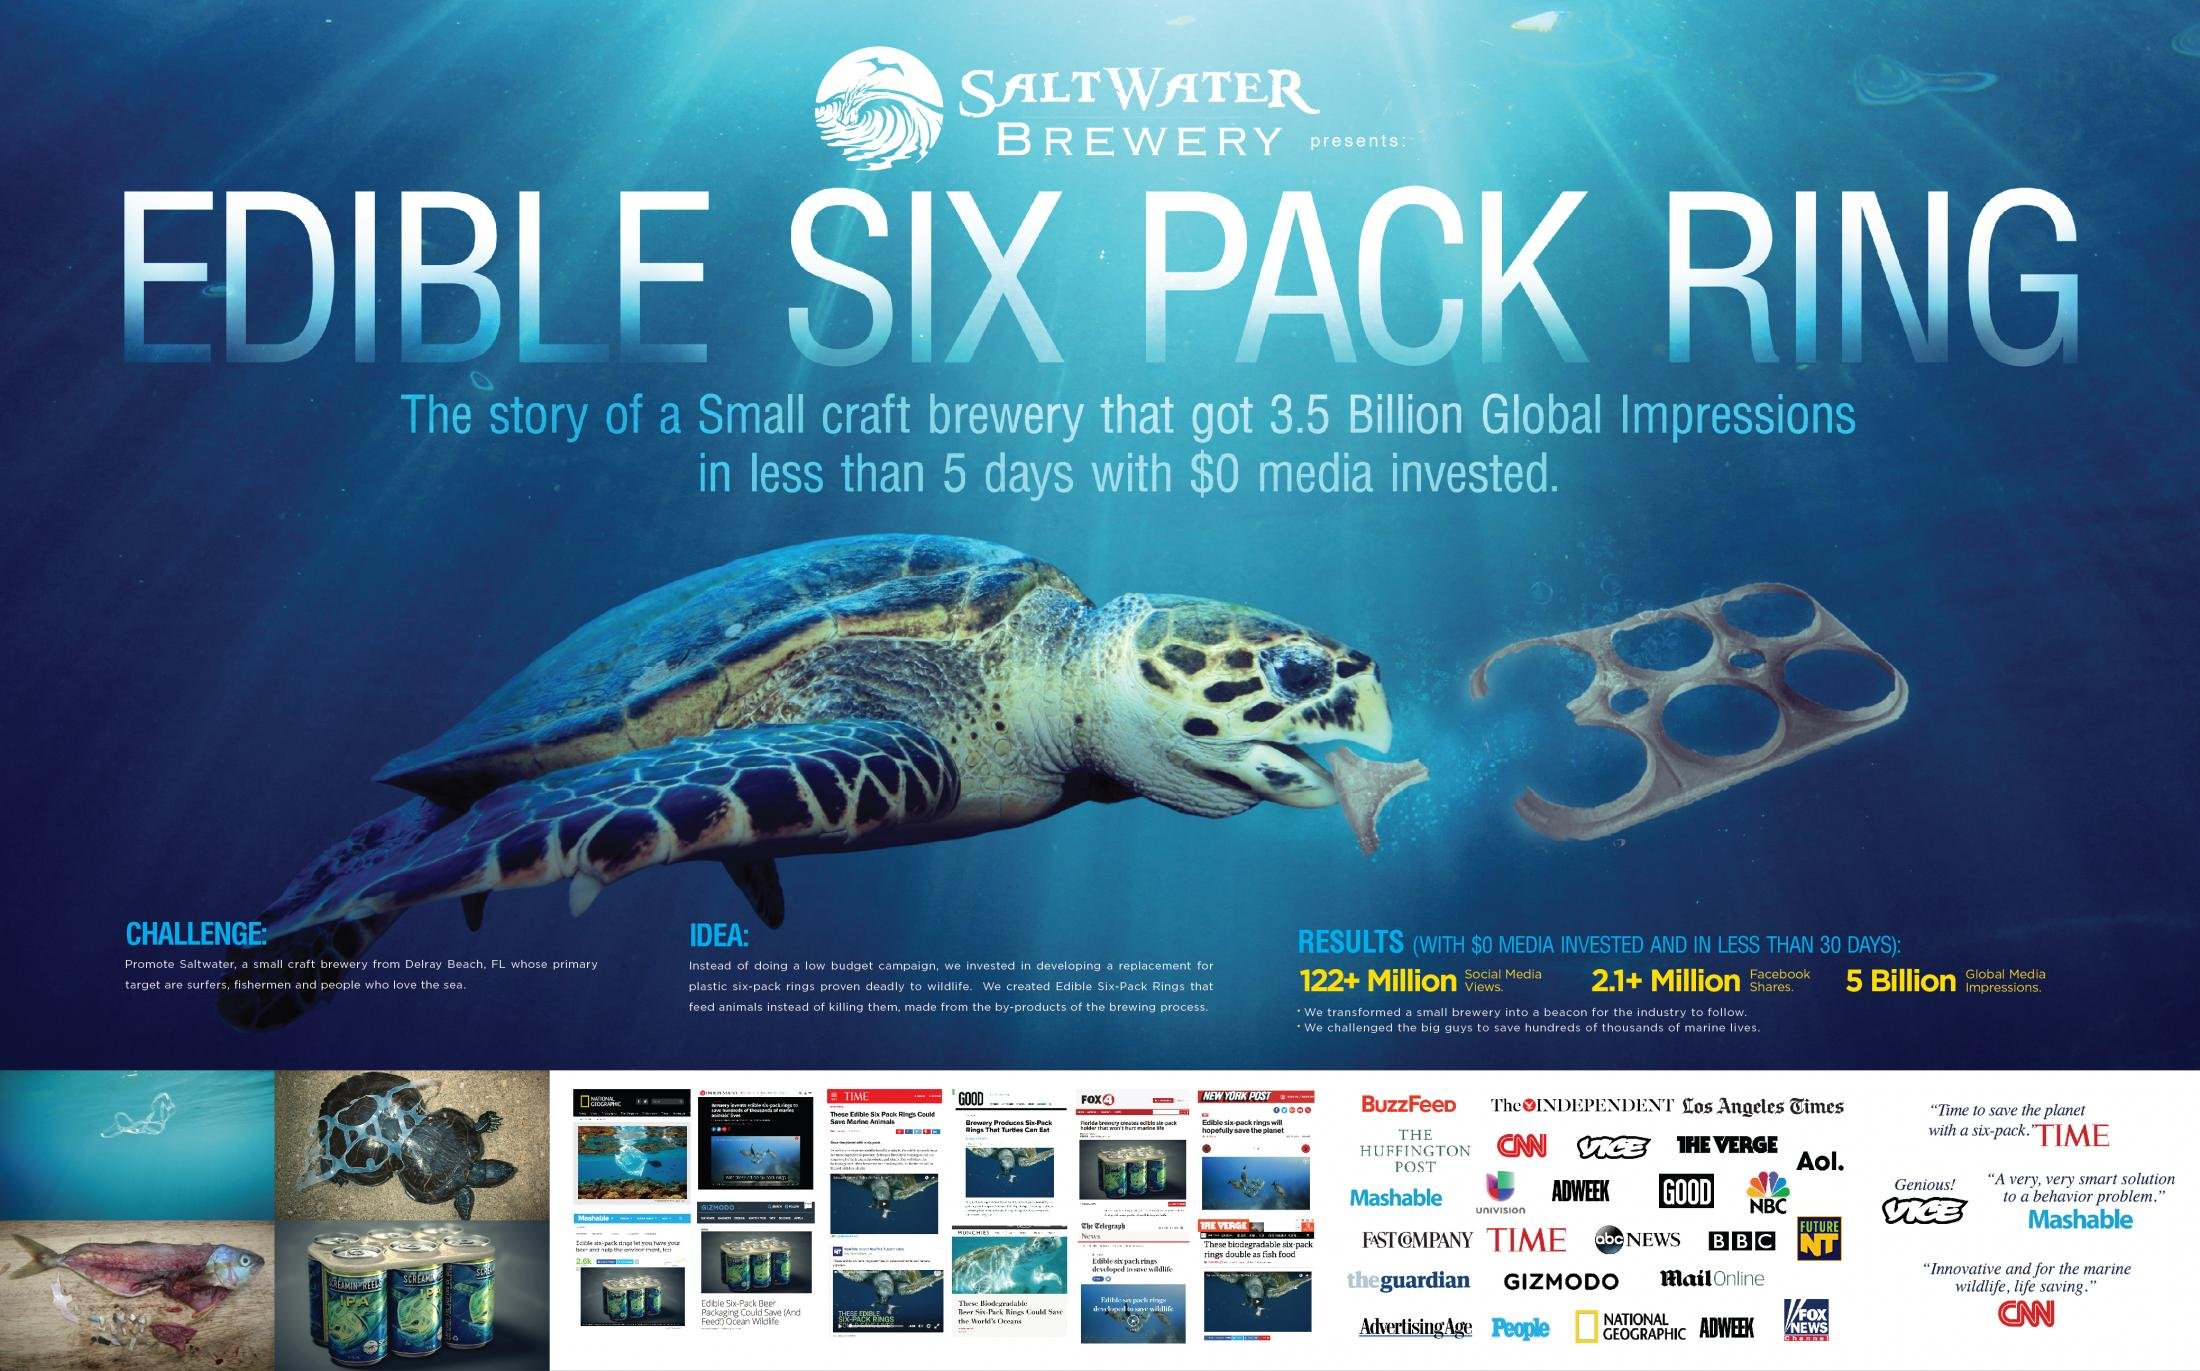 Saltwater Brewery Edible Six Pack Rings